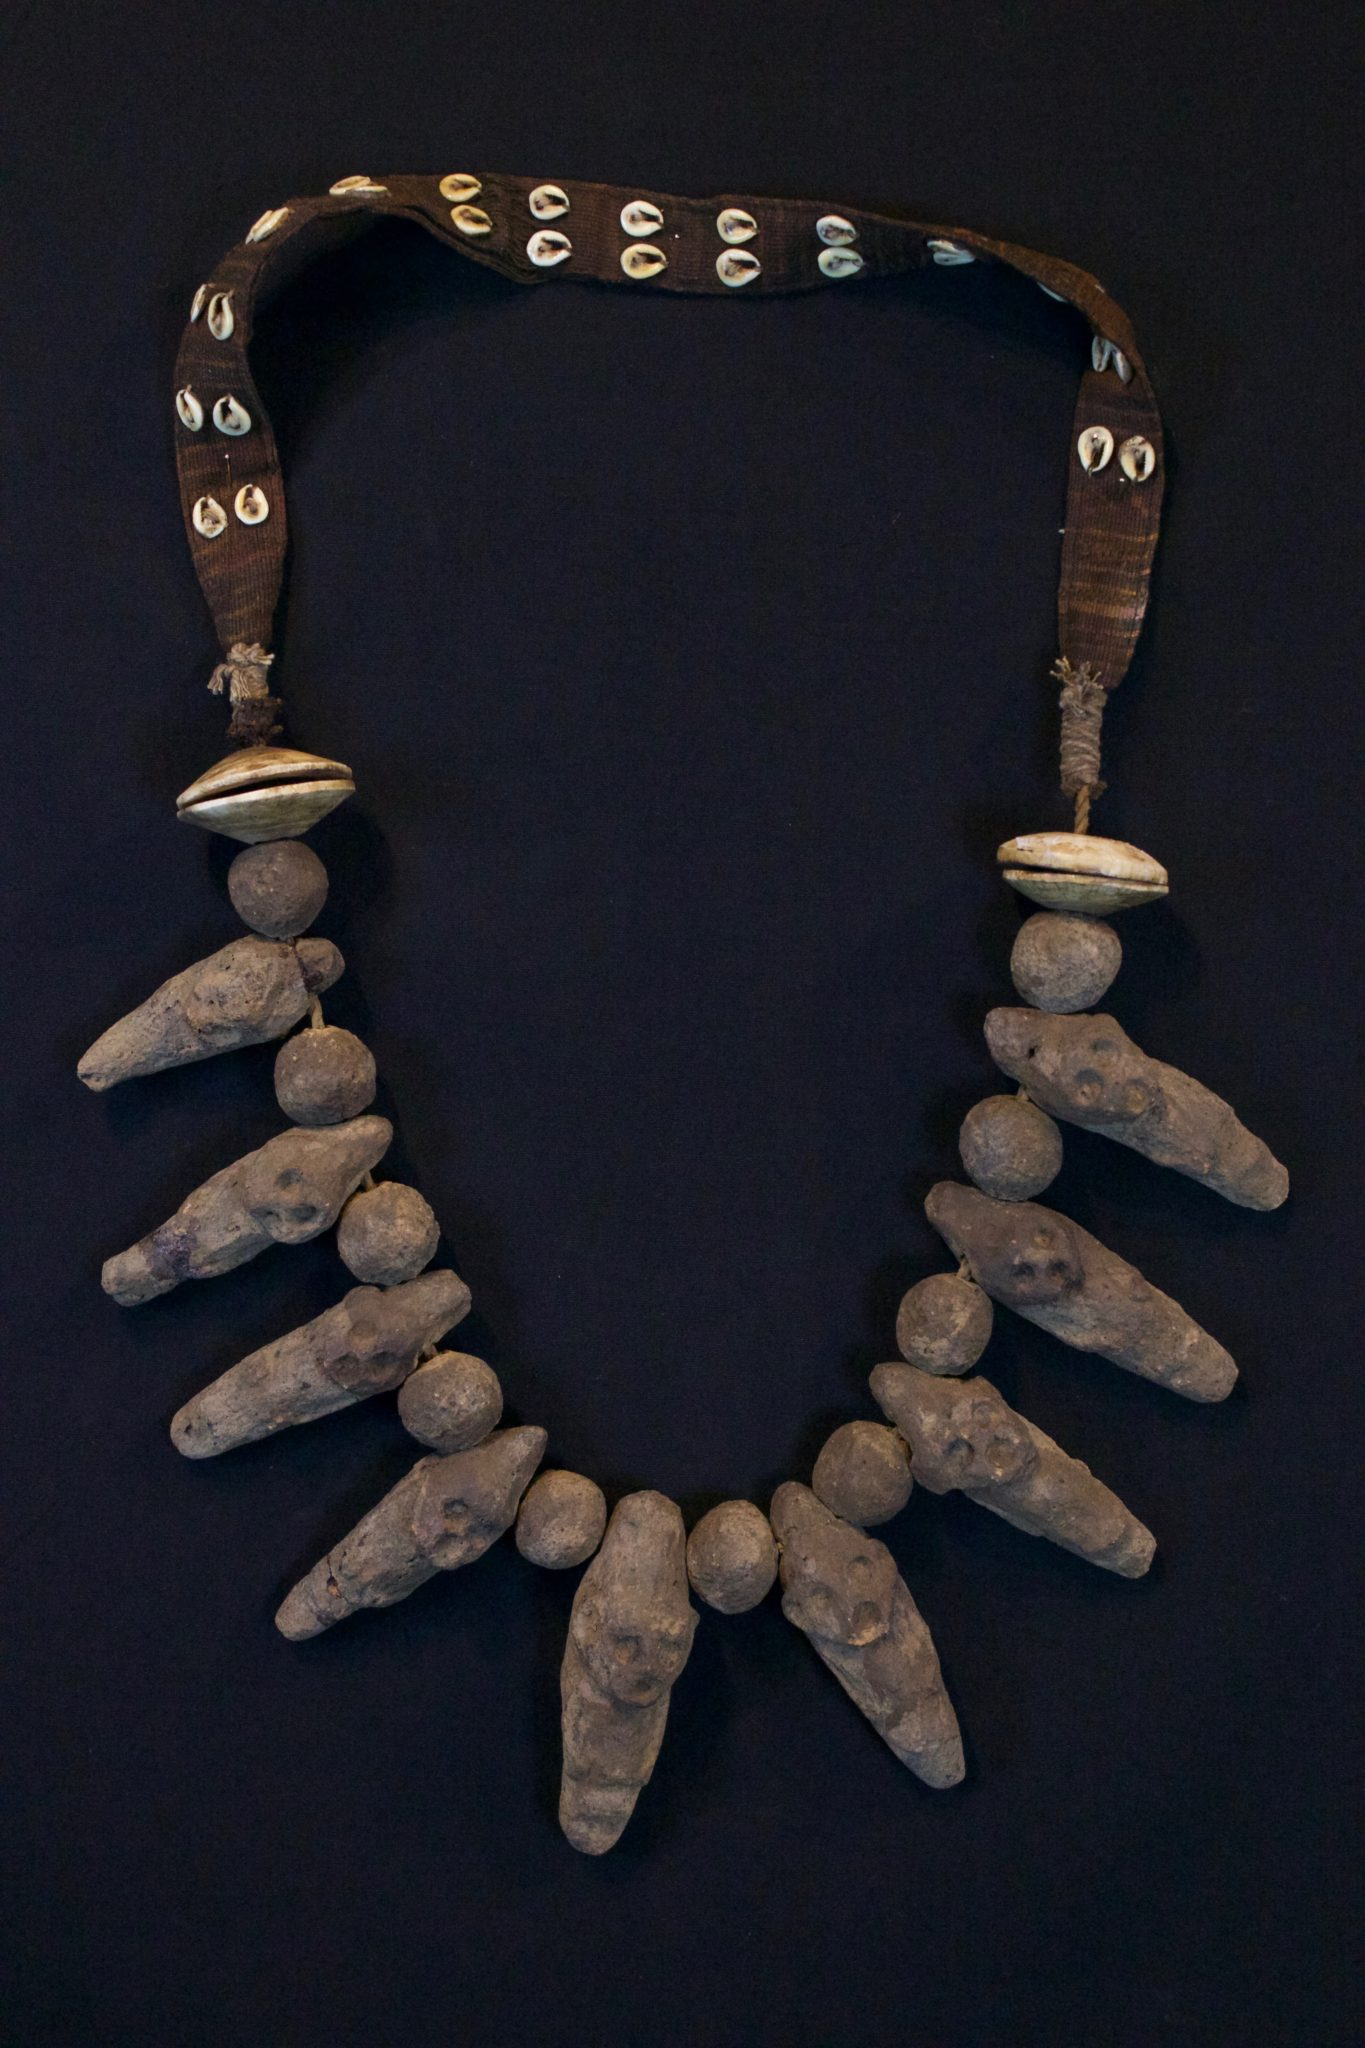 "Shaman Amulet Necklace, Timor Island, Lesser Sunda Islands, Indonesia, Early 20th c, Ceramic stone figures and beads, shell, cotton. Worn by the shaman for healing ceremonies. 20 ½"" x 11"" x 1 ¾"", $650."